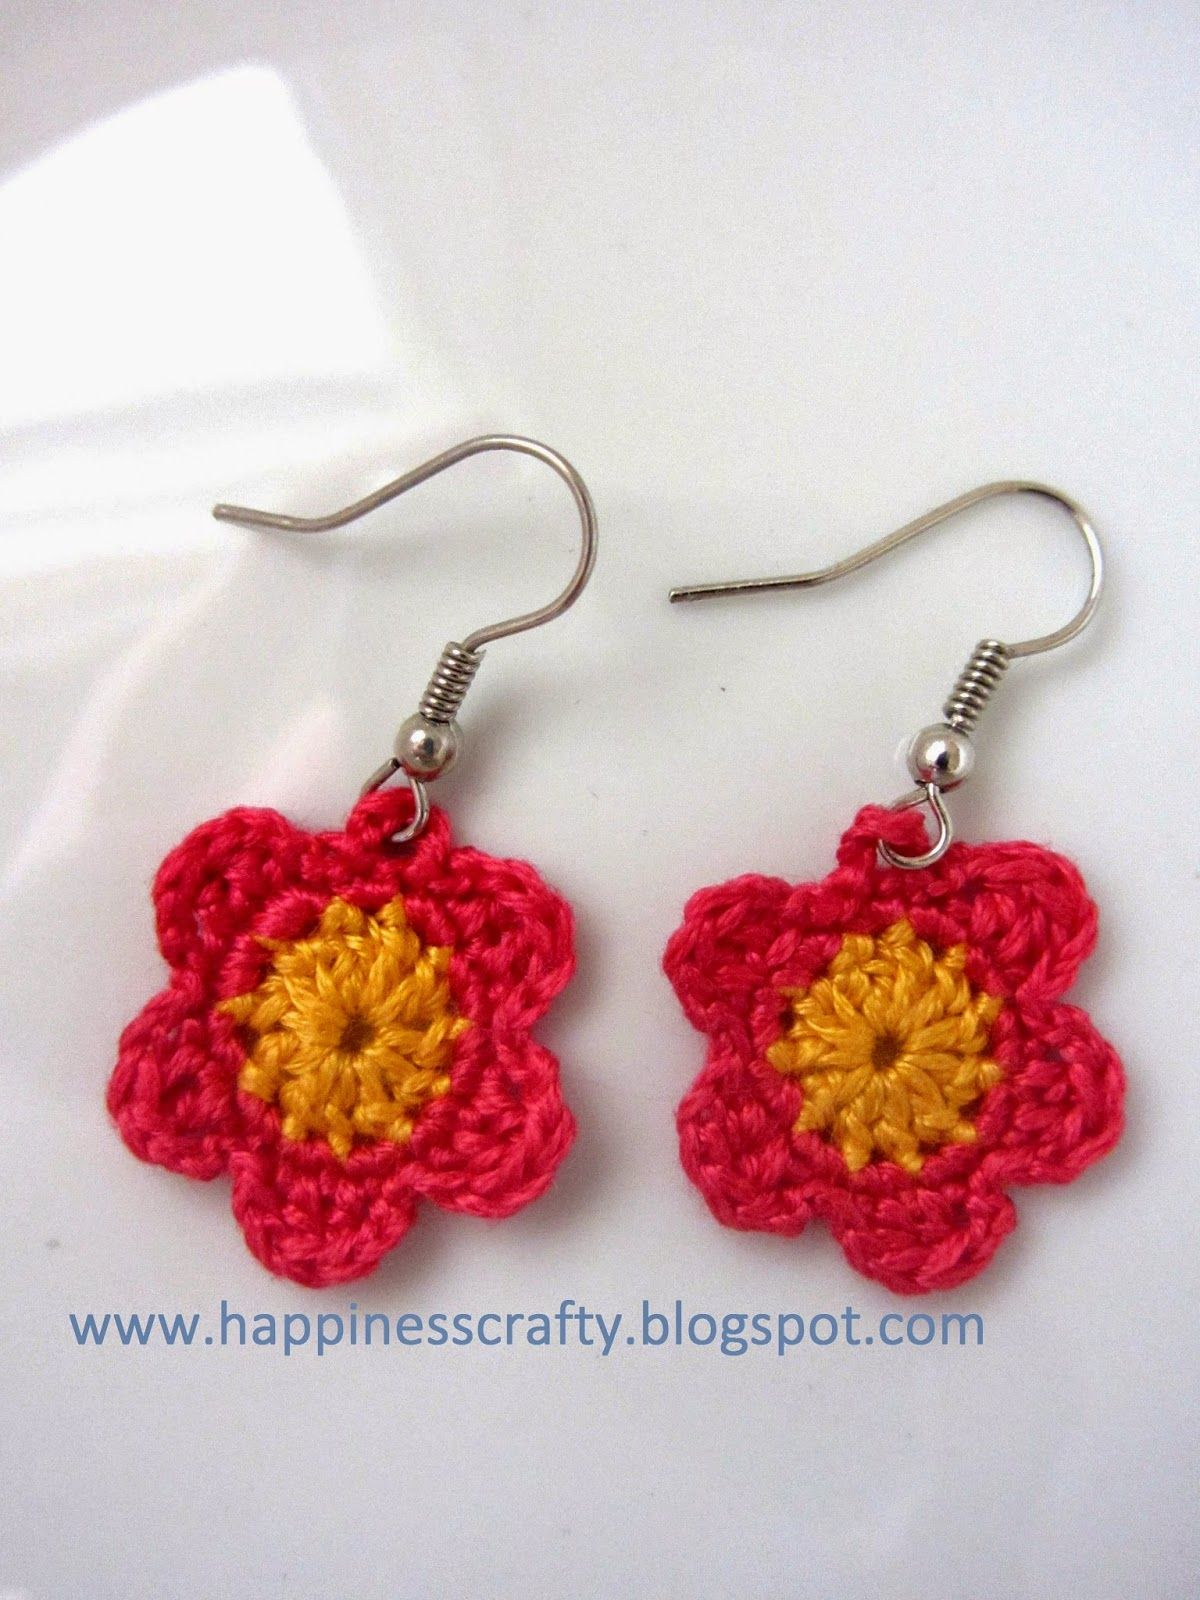 Happiness Crafty: Crochet Flower Earrings ~ Free Pattern ...